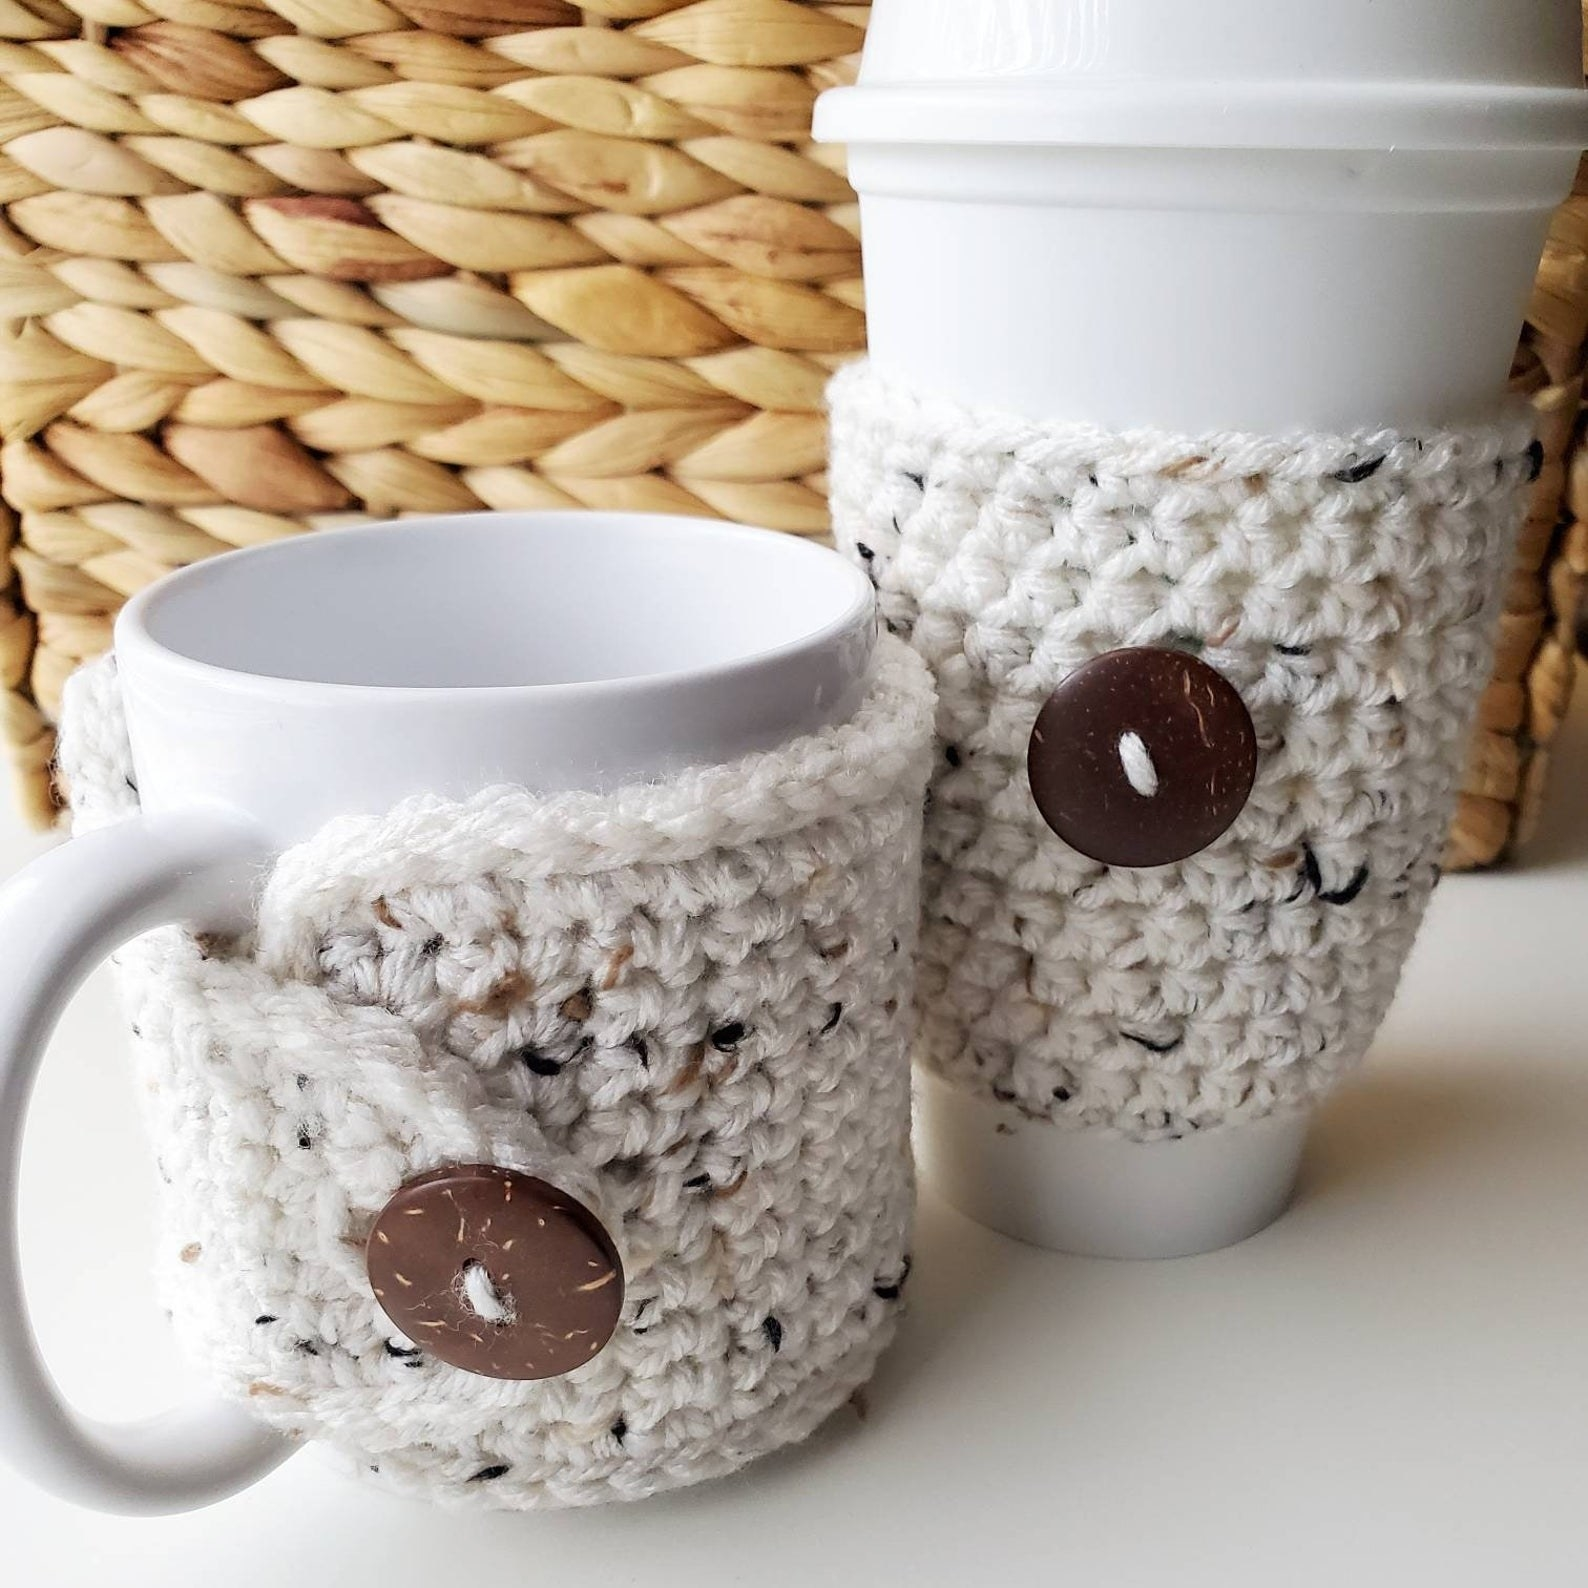 The two oatmeal koozies that are fastened by a button and wrapped around a mug and travel coffee cup